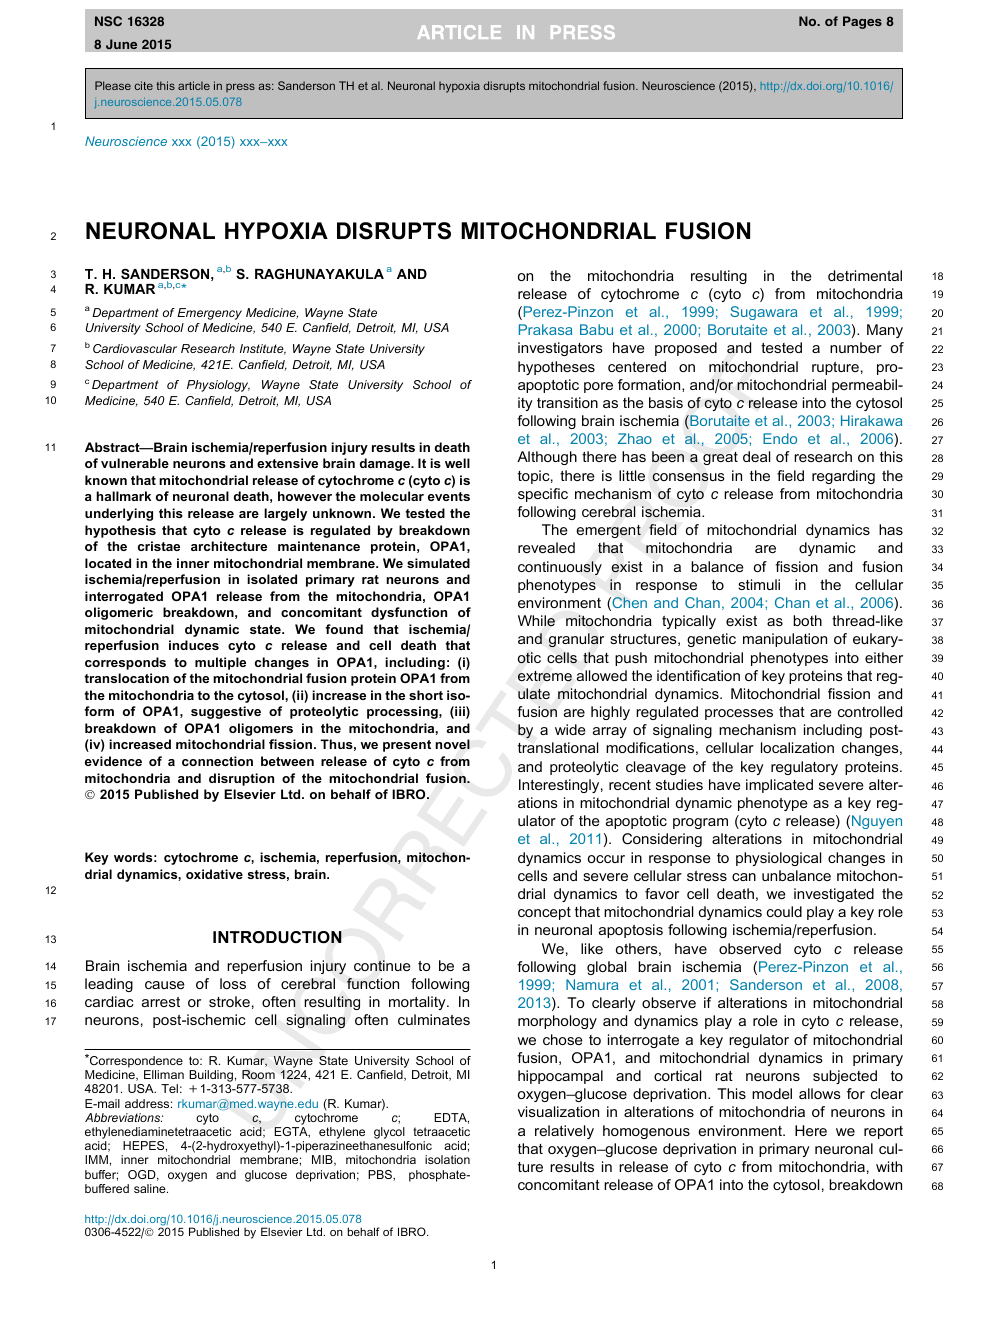 Neuronal hypoxia disrupts mitochondrial fusion – topic of